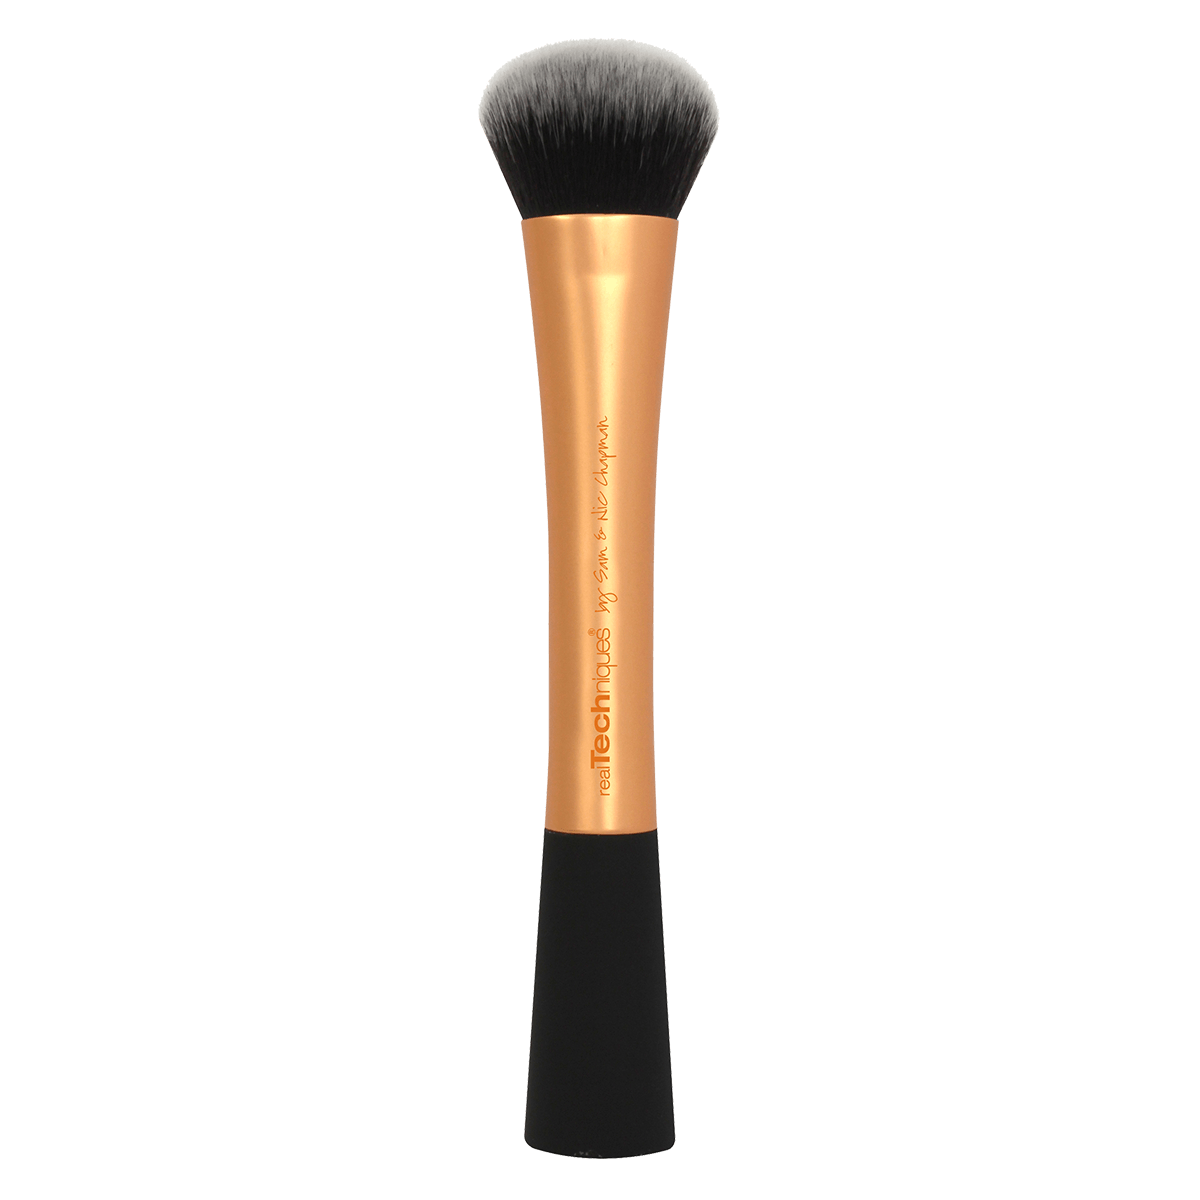 expert-face-brush-full-01.png